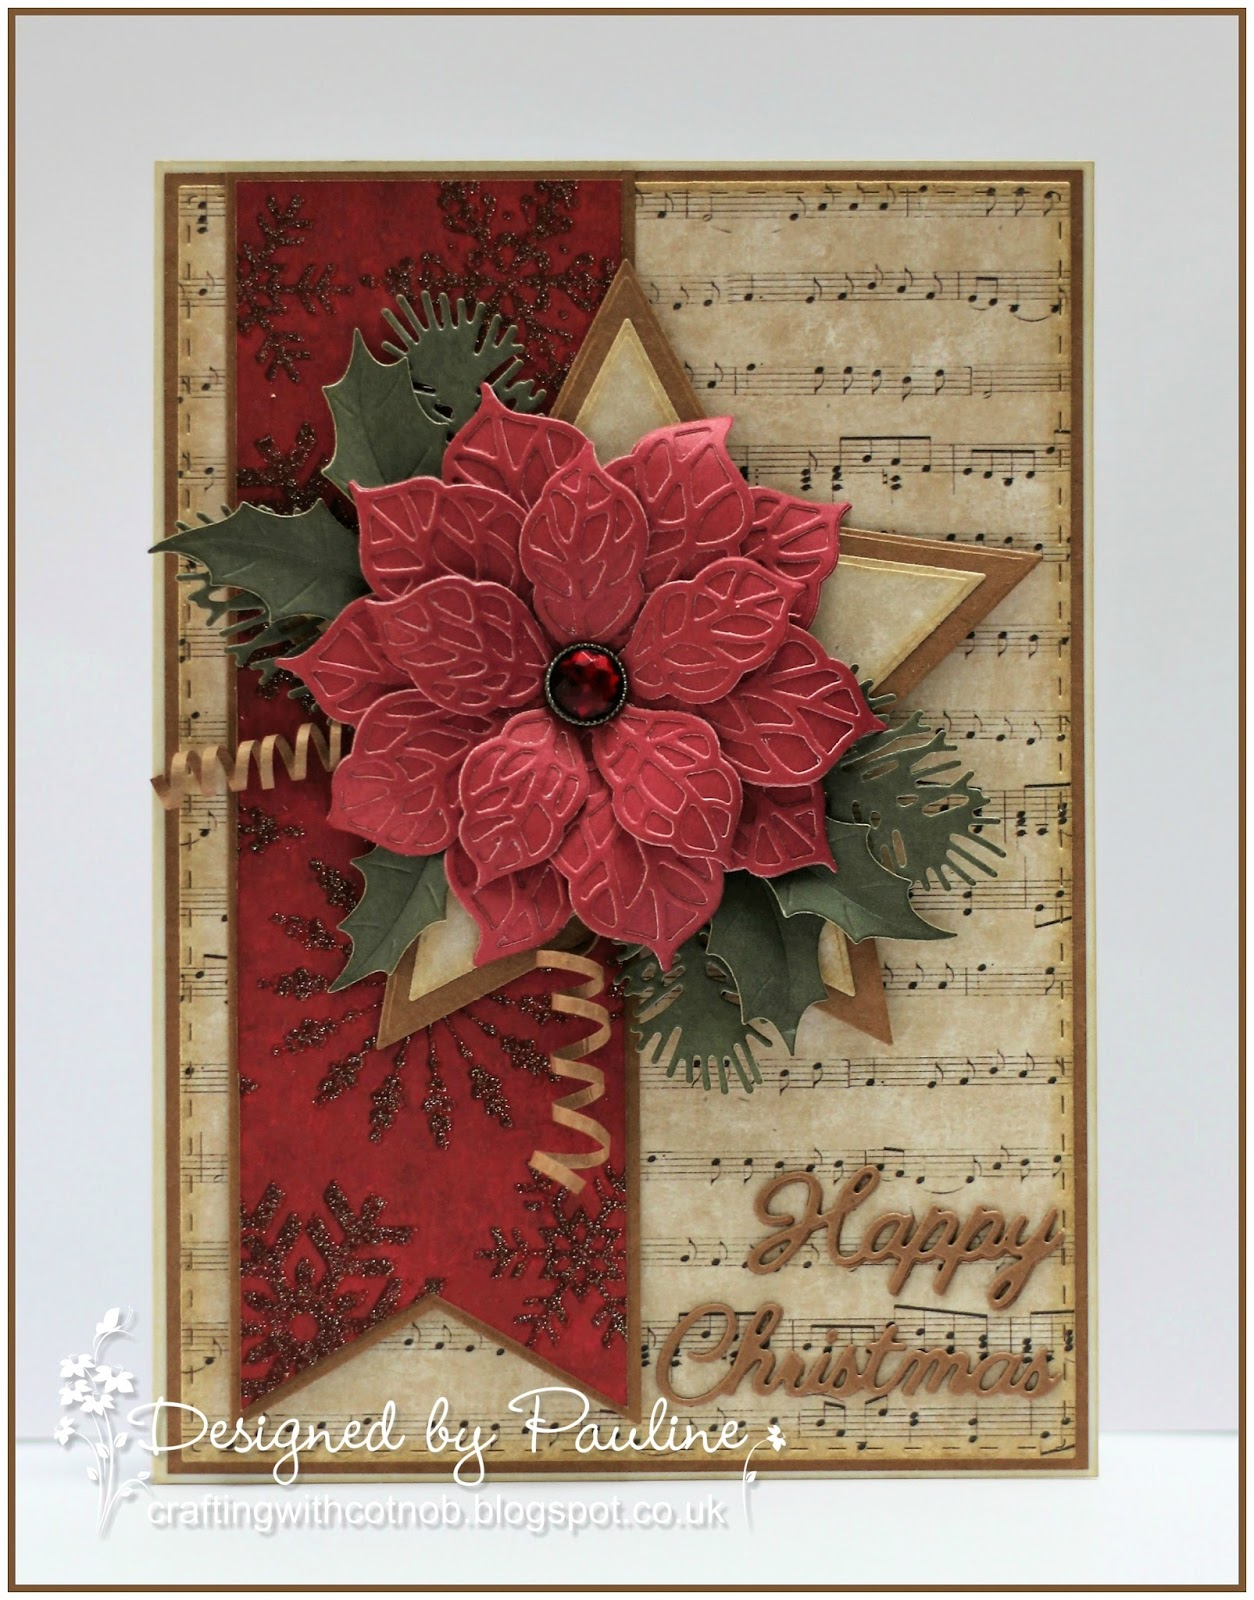 Crafting with Cotnob: Traditional Christmas